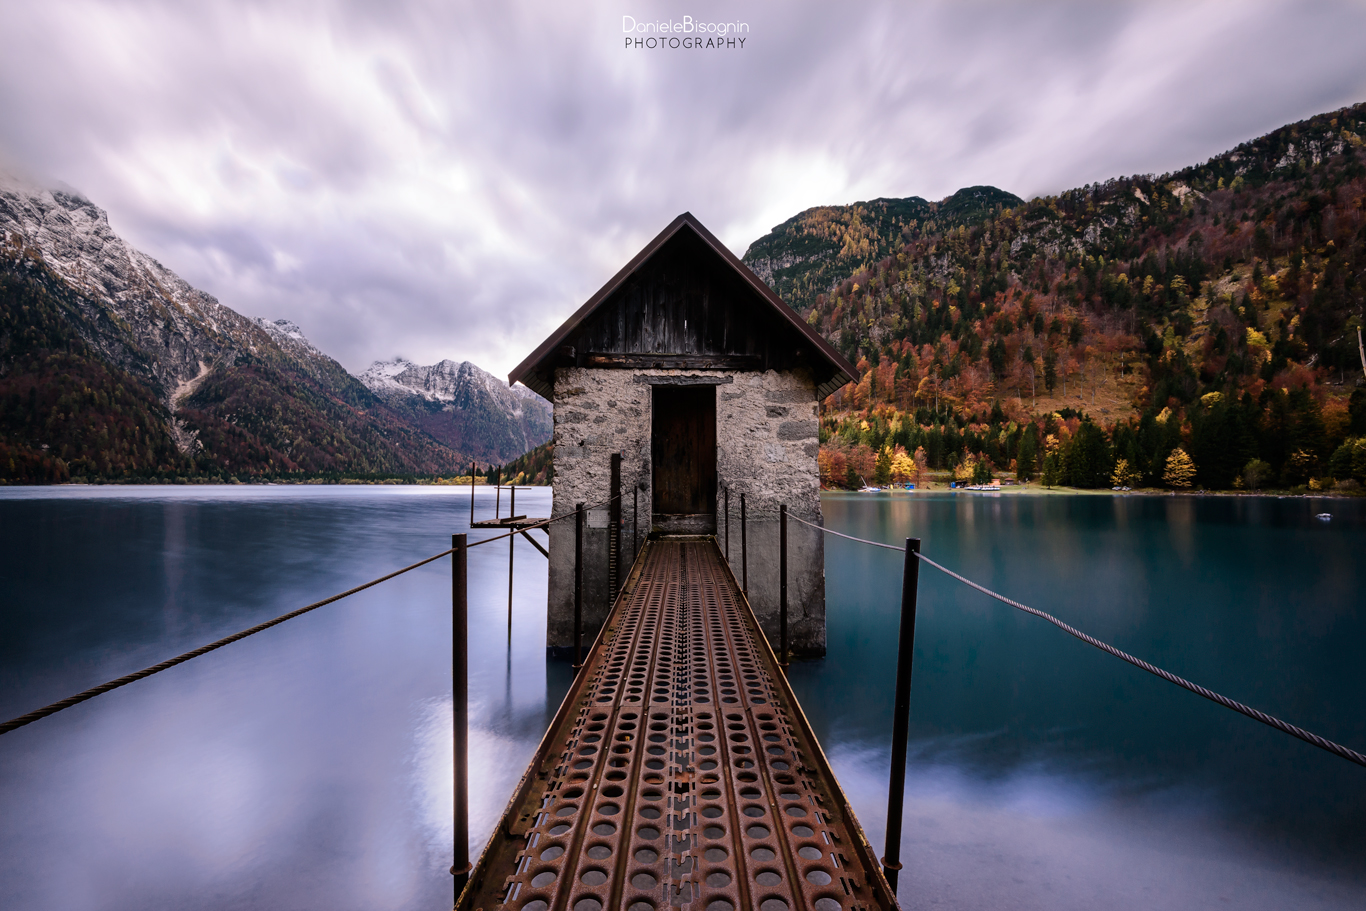 The hut in the lake...